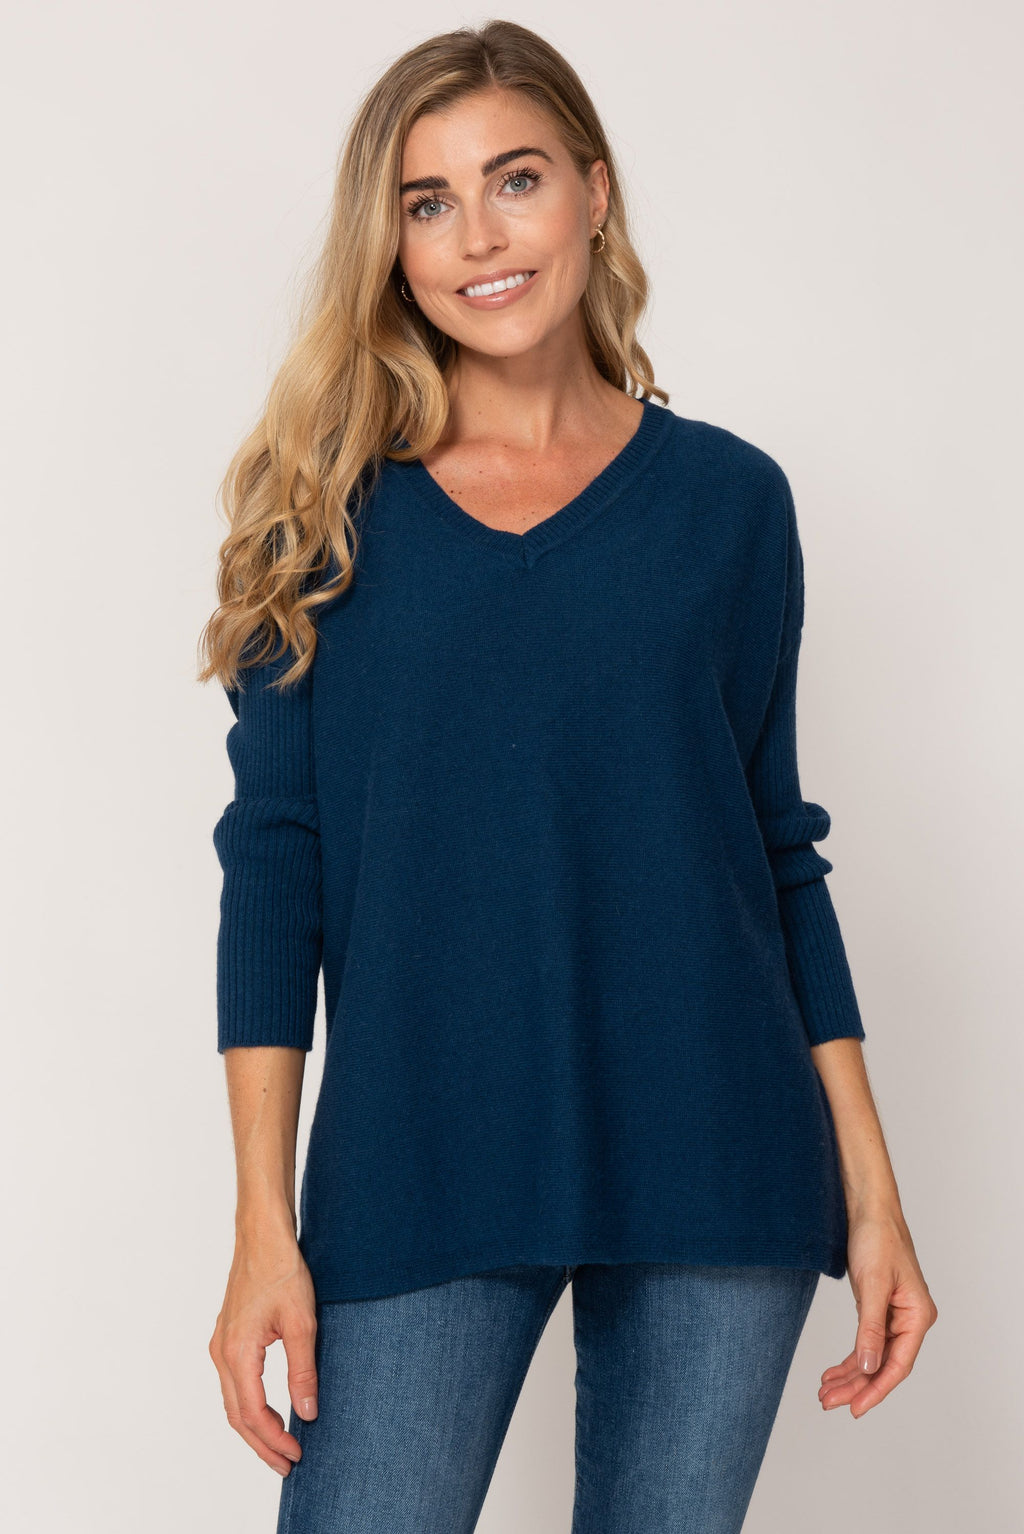 Cashmere Sweater- Air Force Blue with Back Star